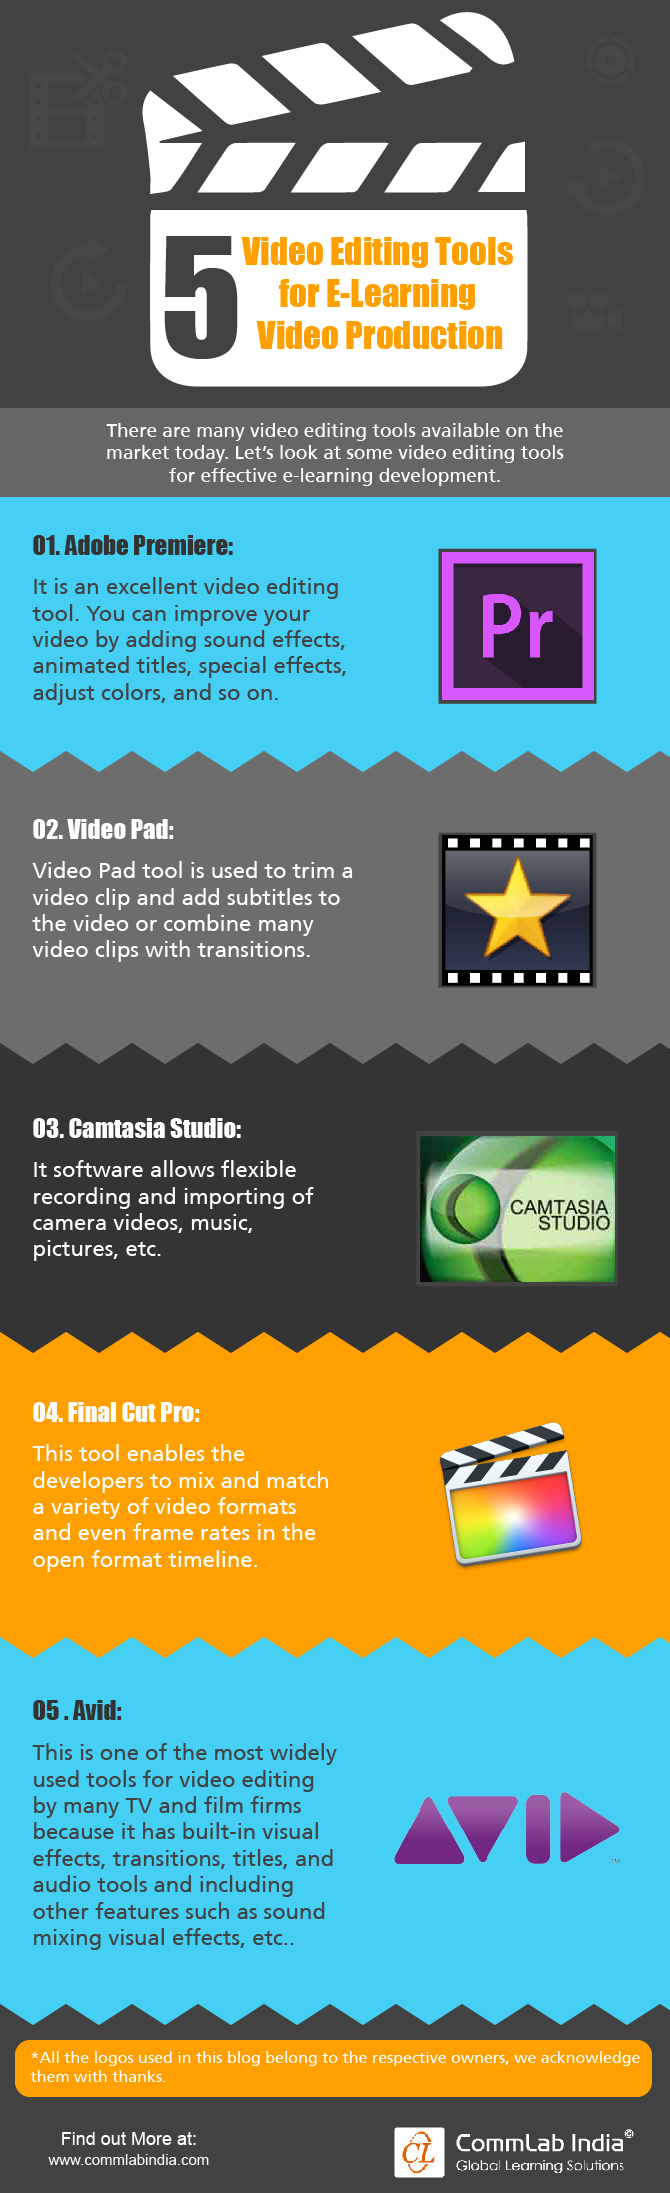 5 Video Editing Tools for eLearning Video Production [Infographic]